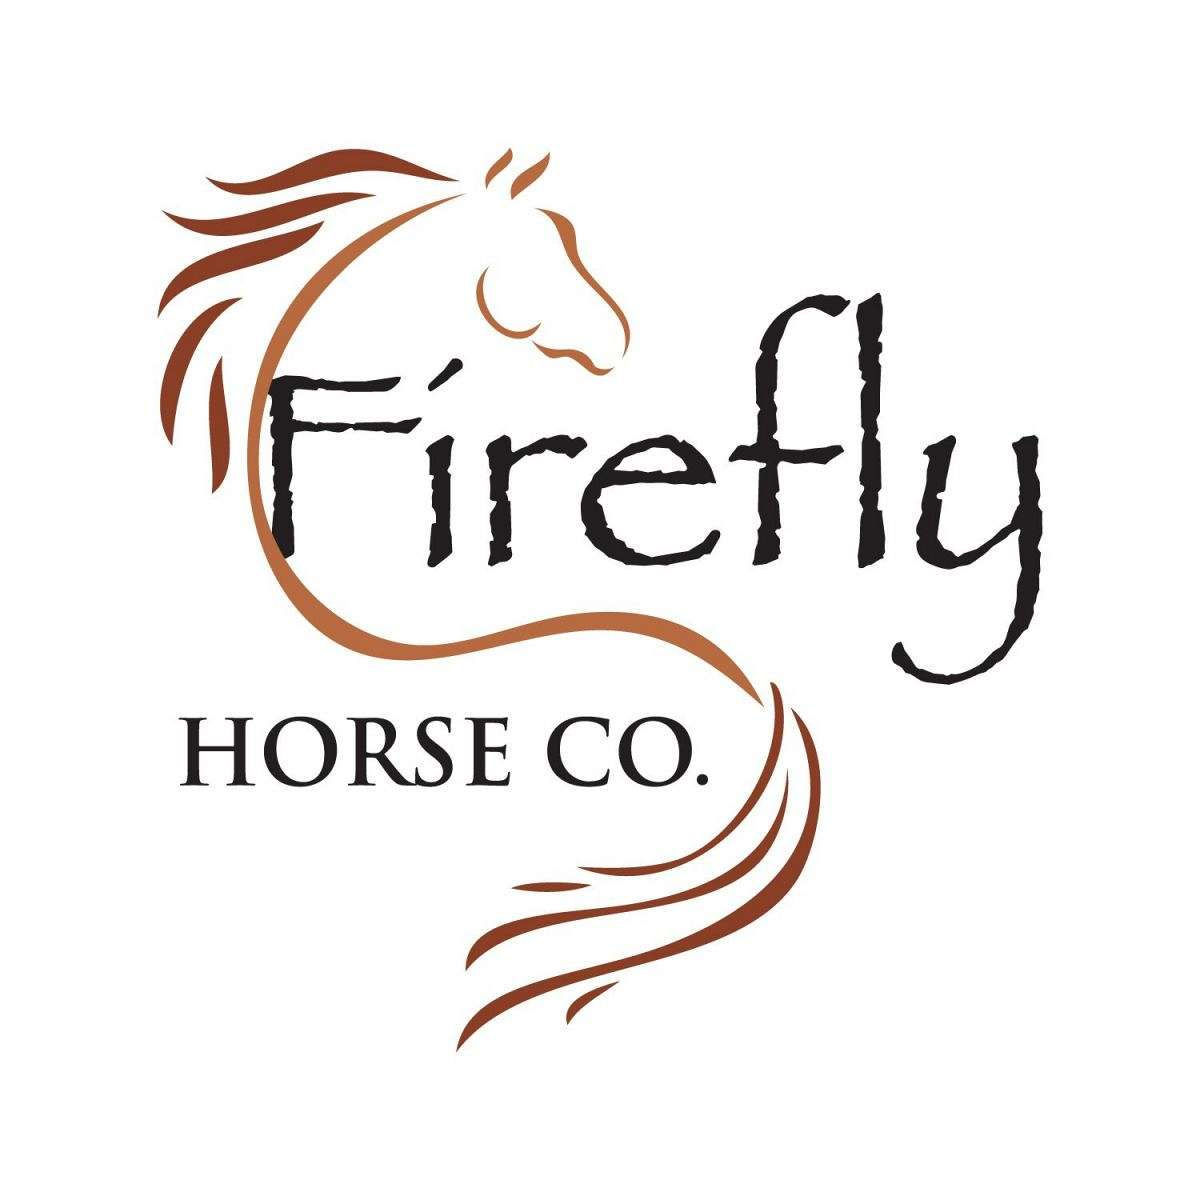 Firefly Horse Co